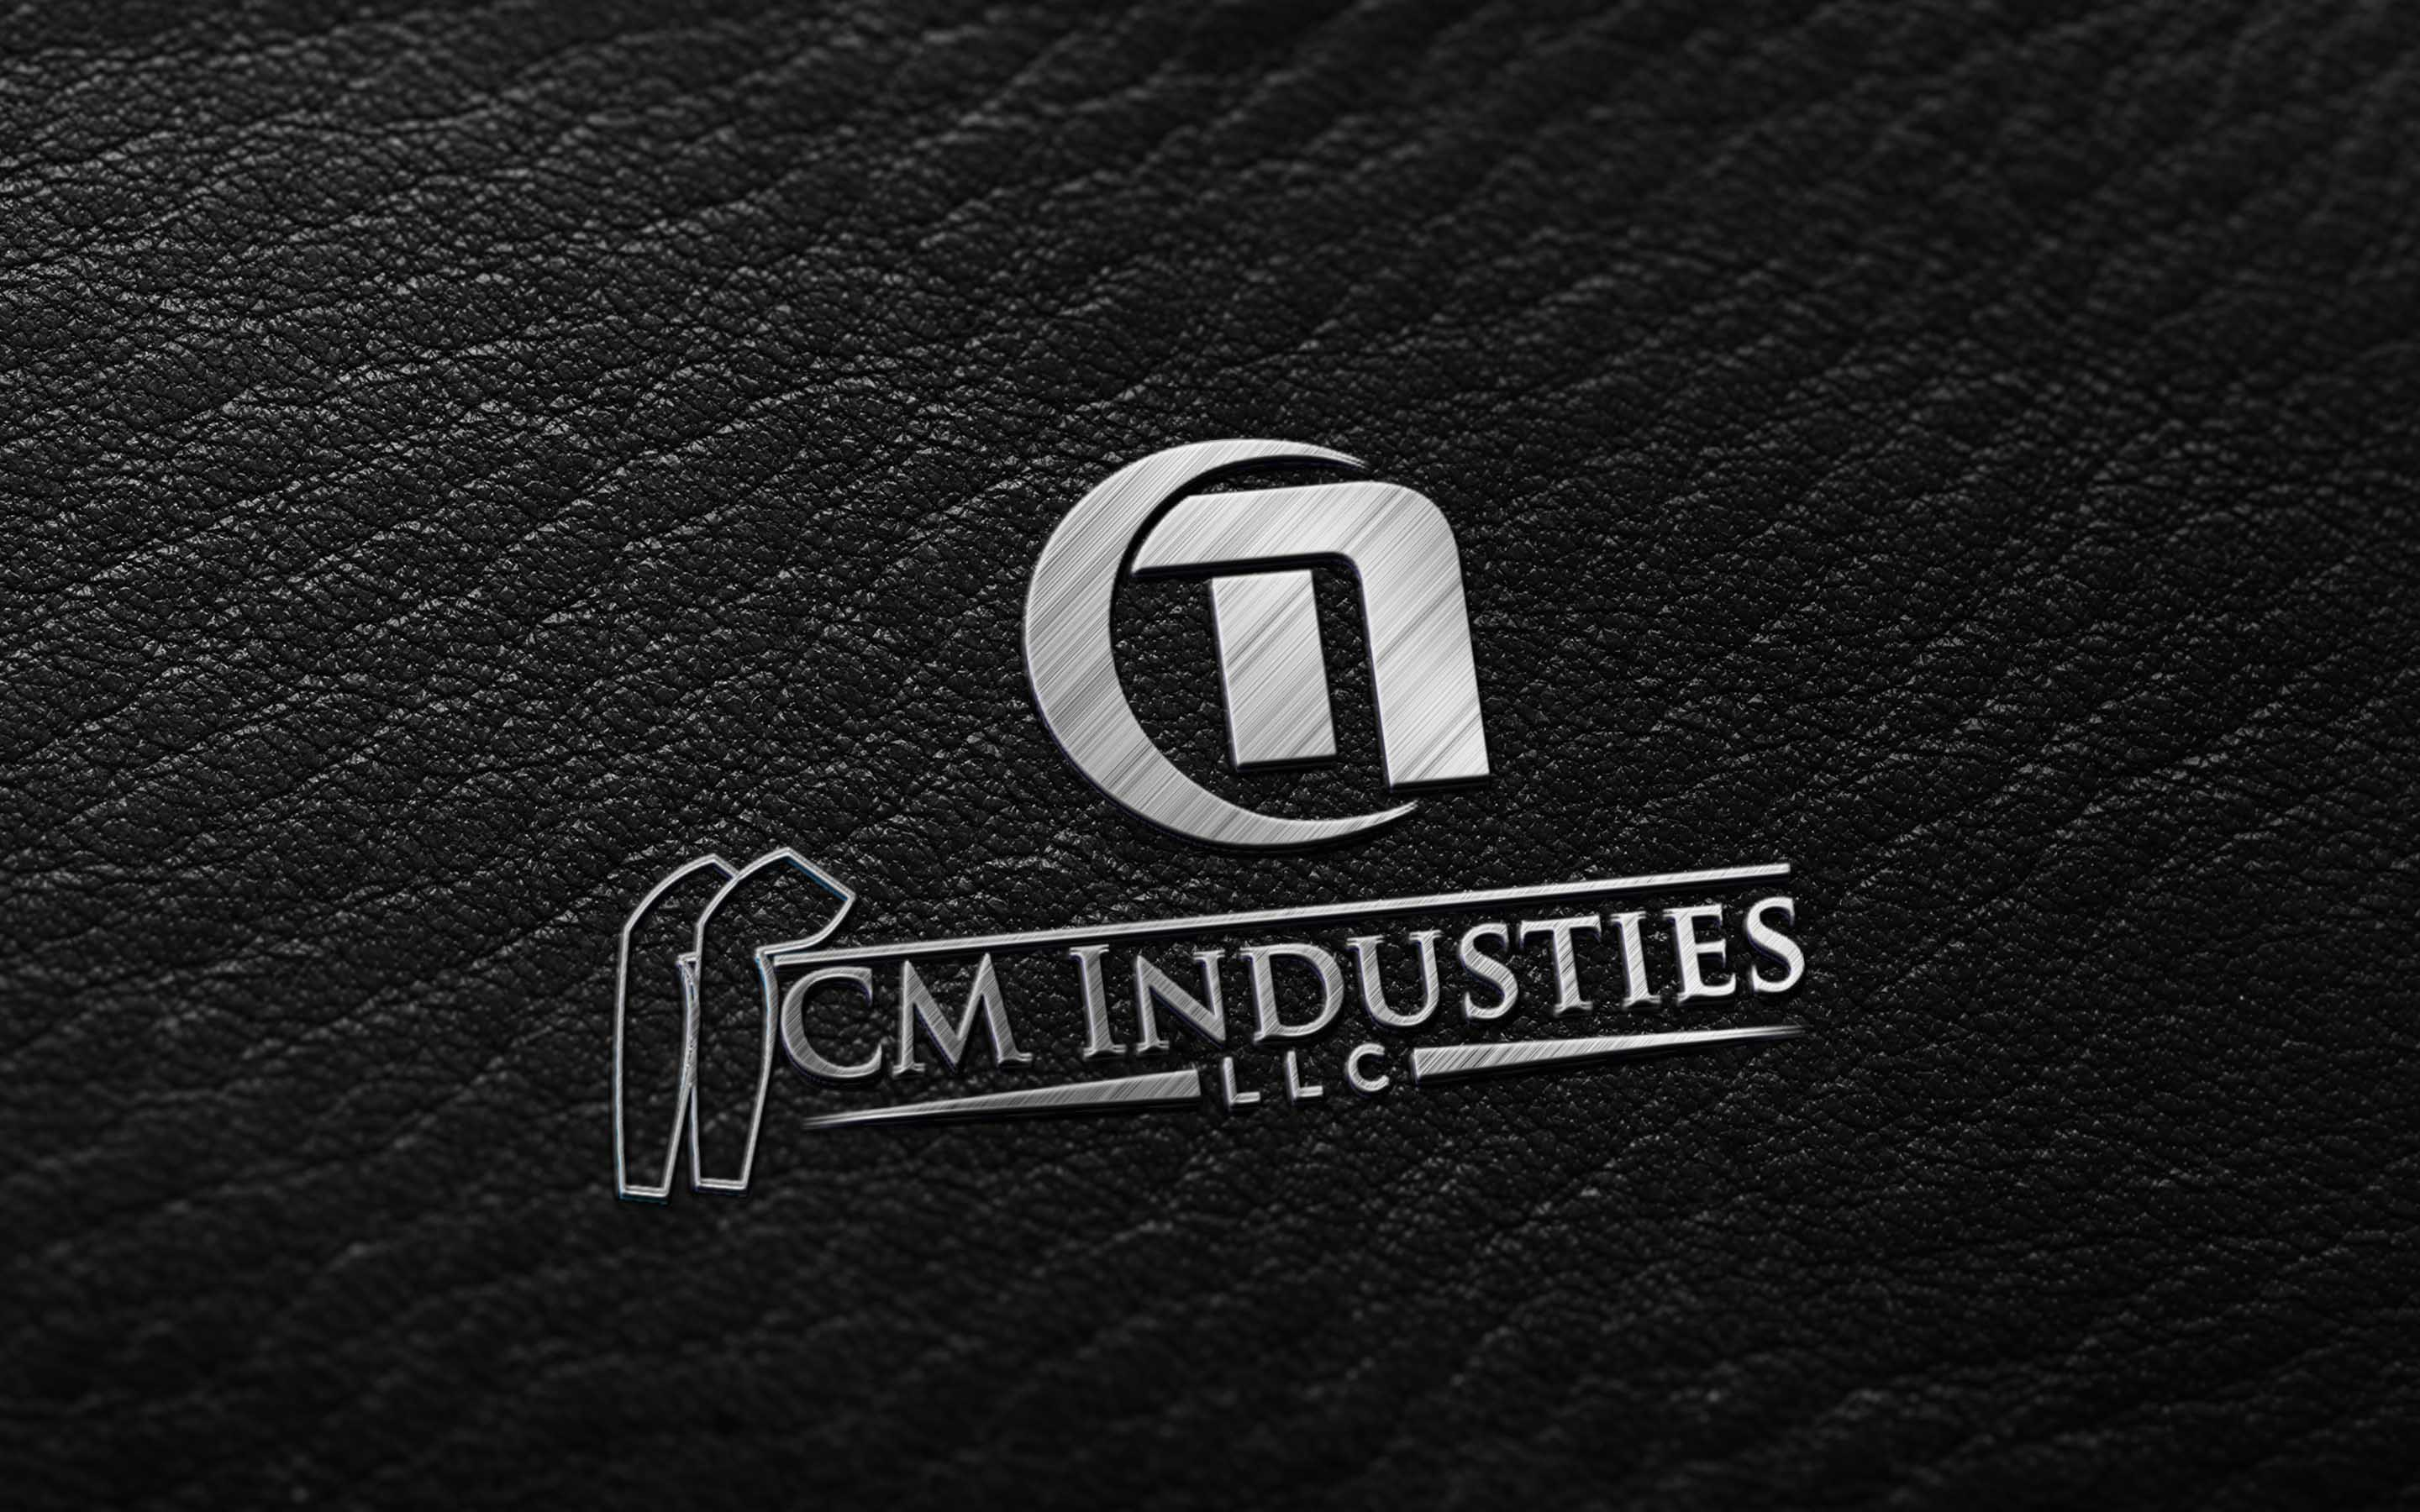 best Dark Leather - Metallic Finish logo mockup